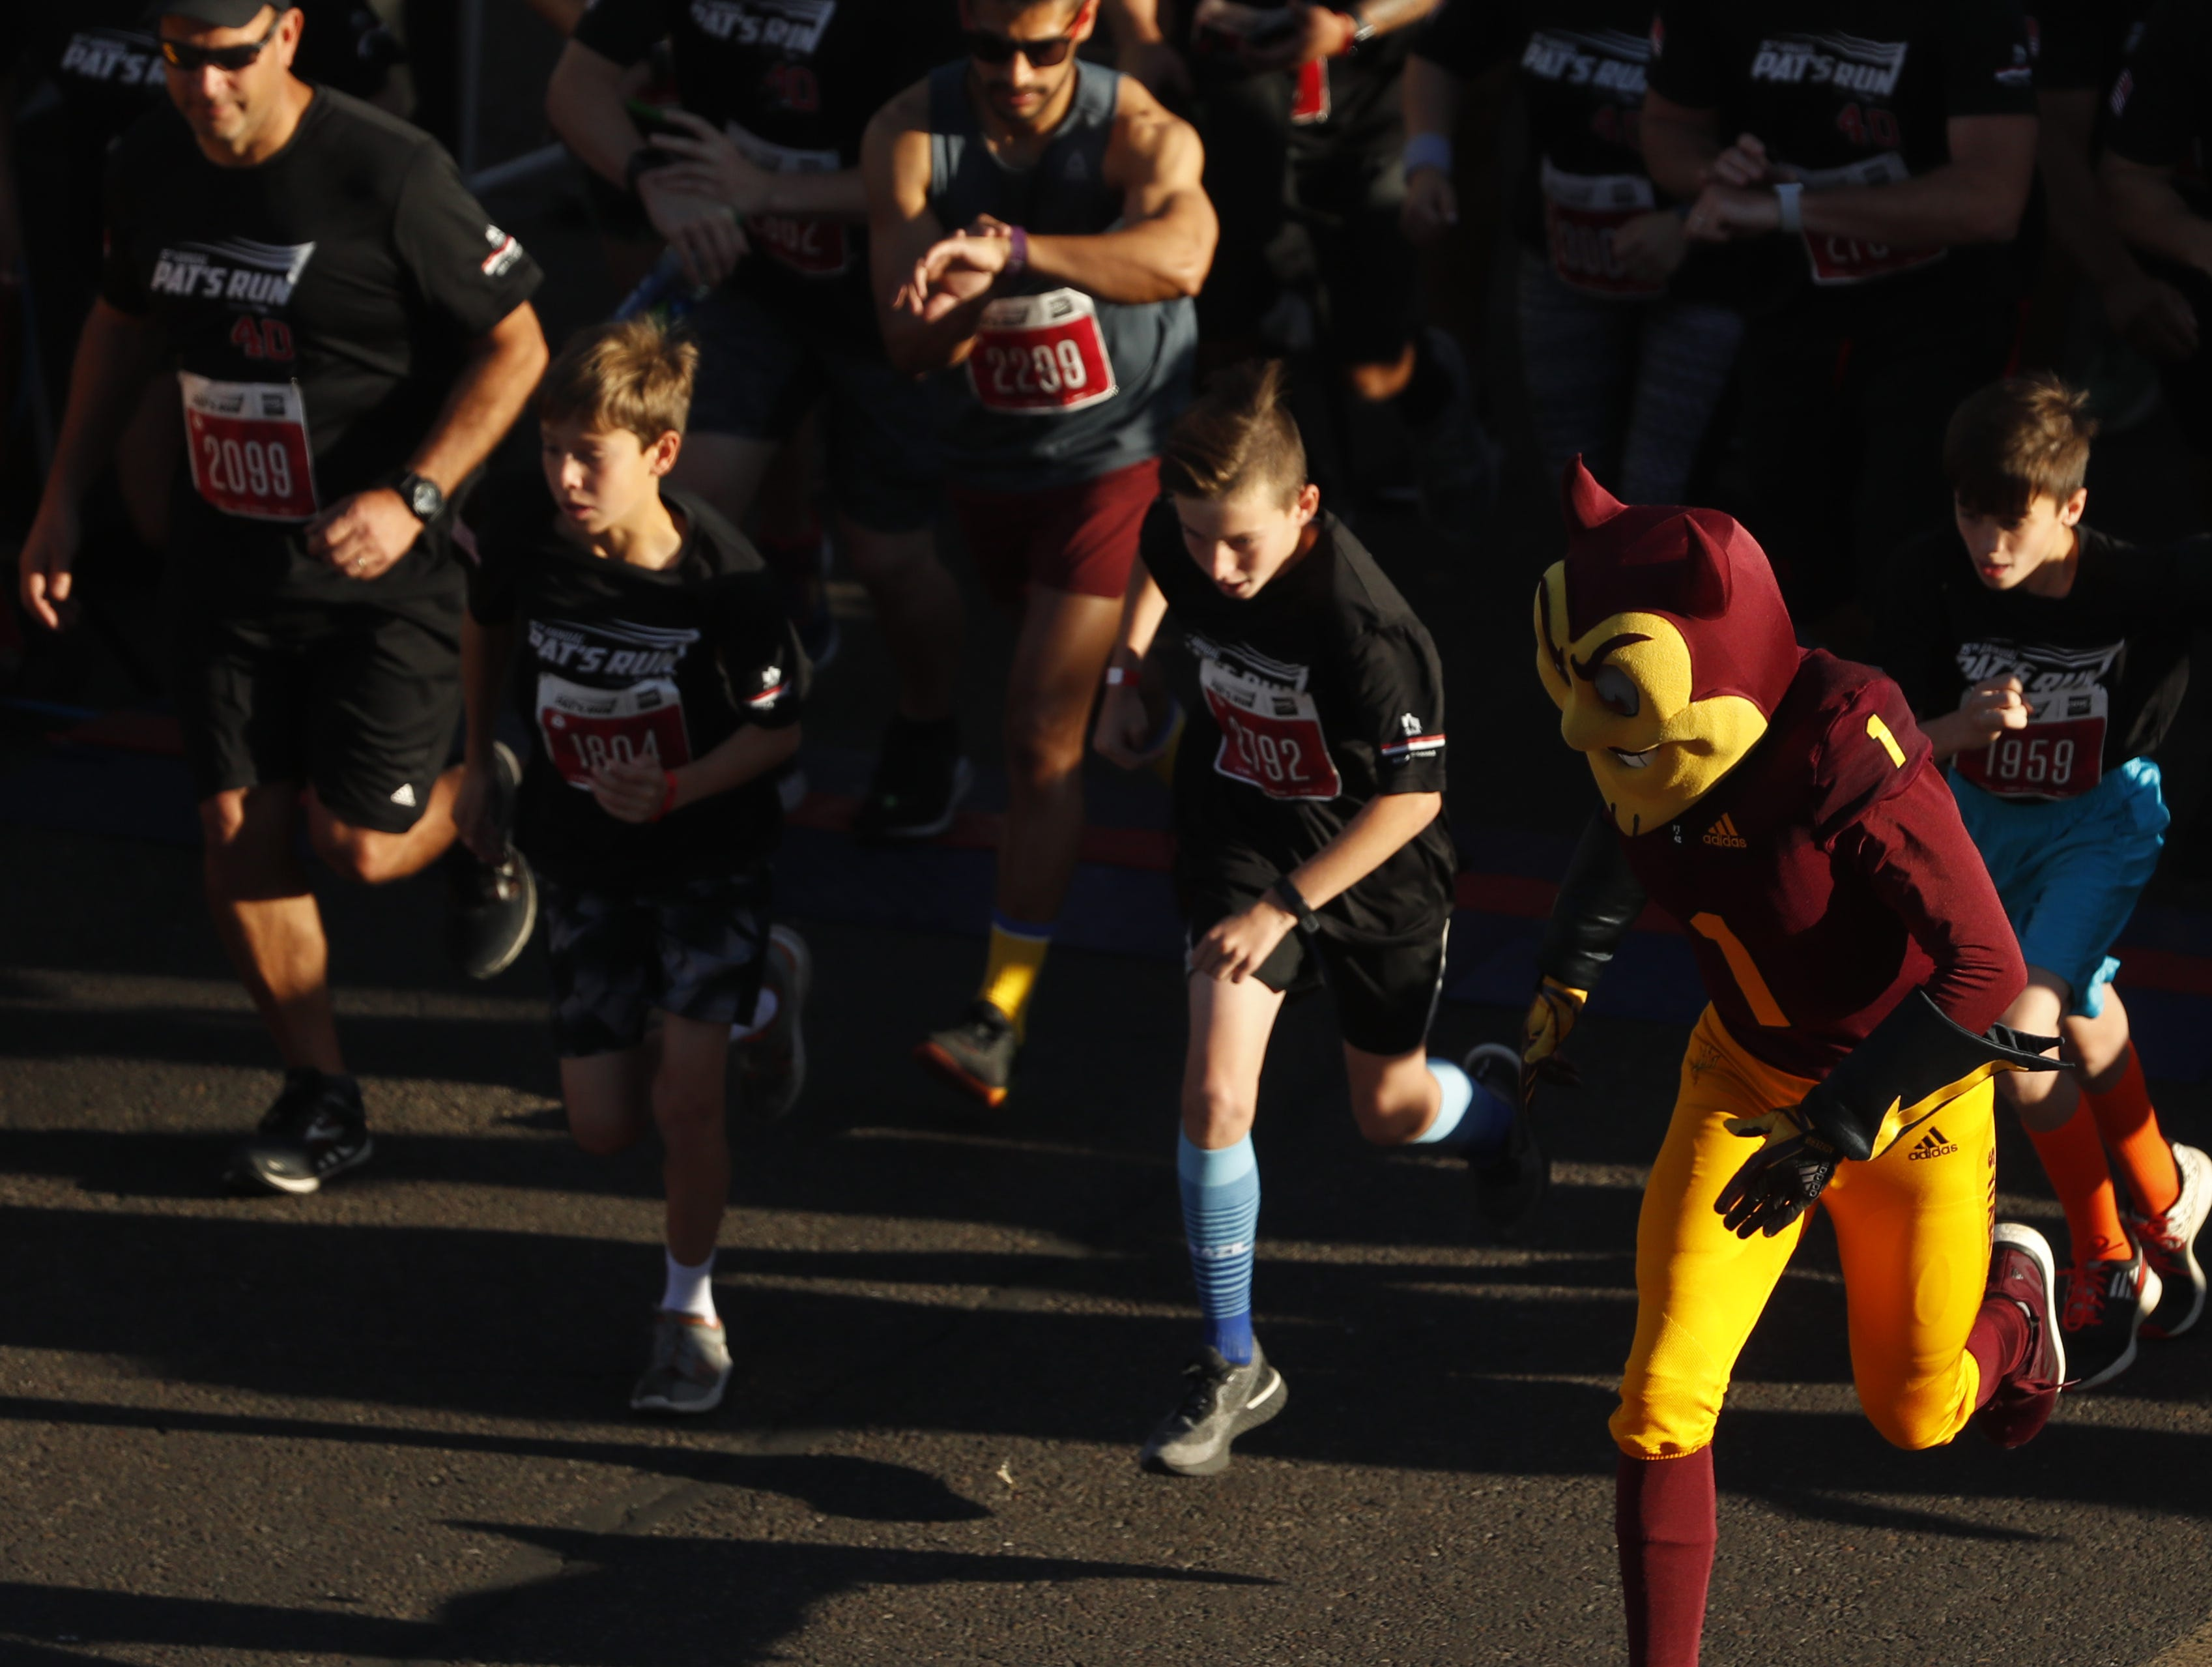 Sparky helps lead off the third corral during Pat's Run 2019 in Tempe, Ariz. on April 27, 2019.